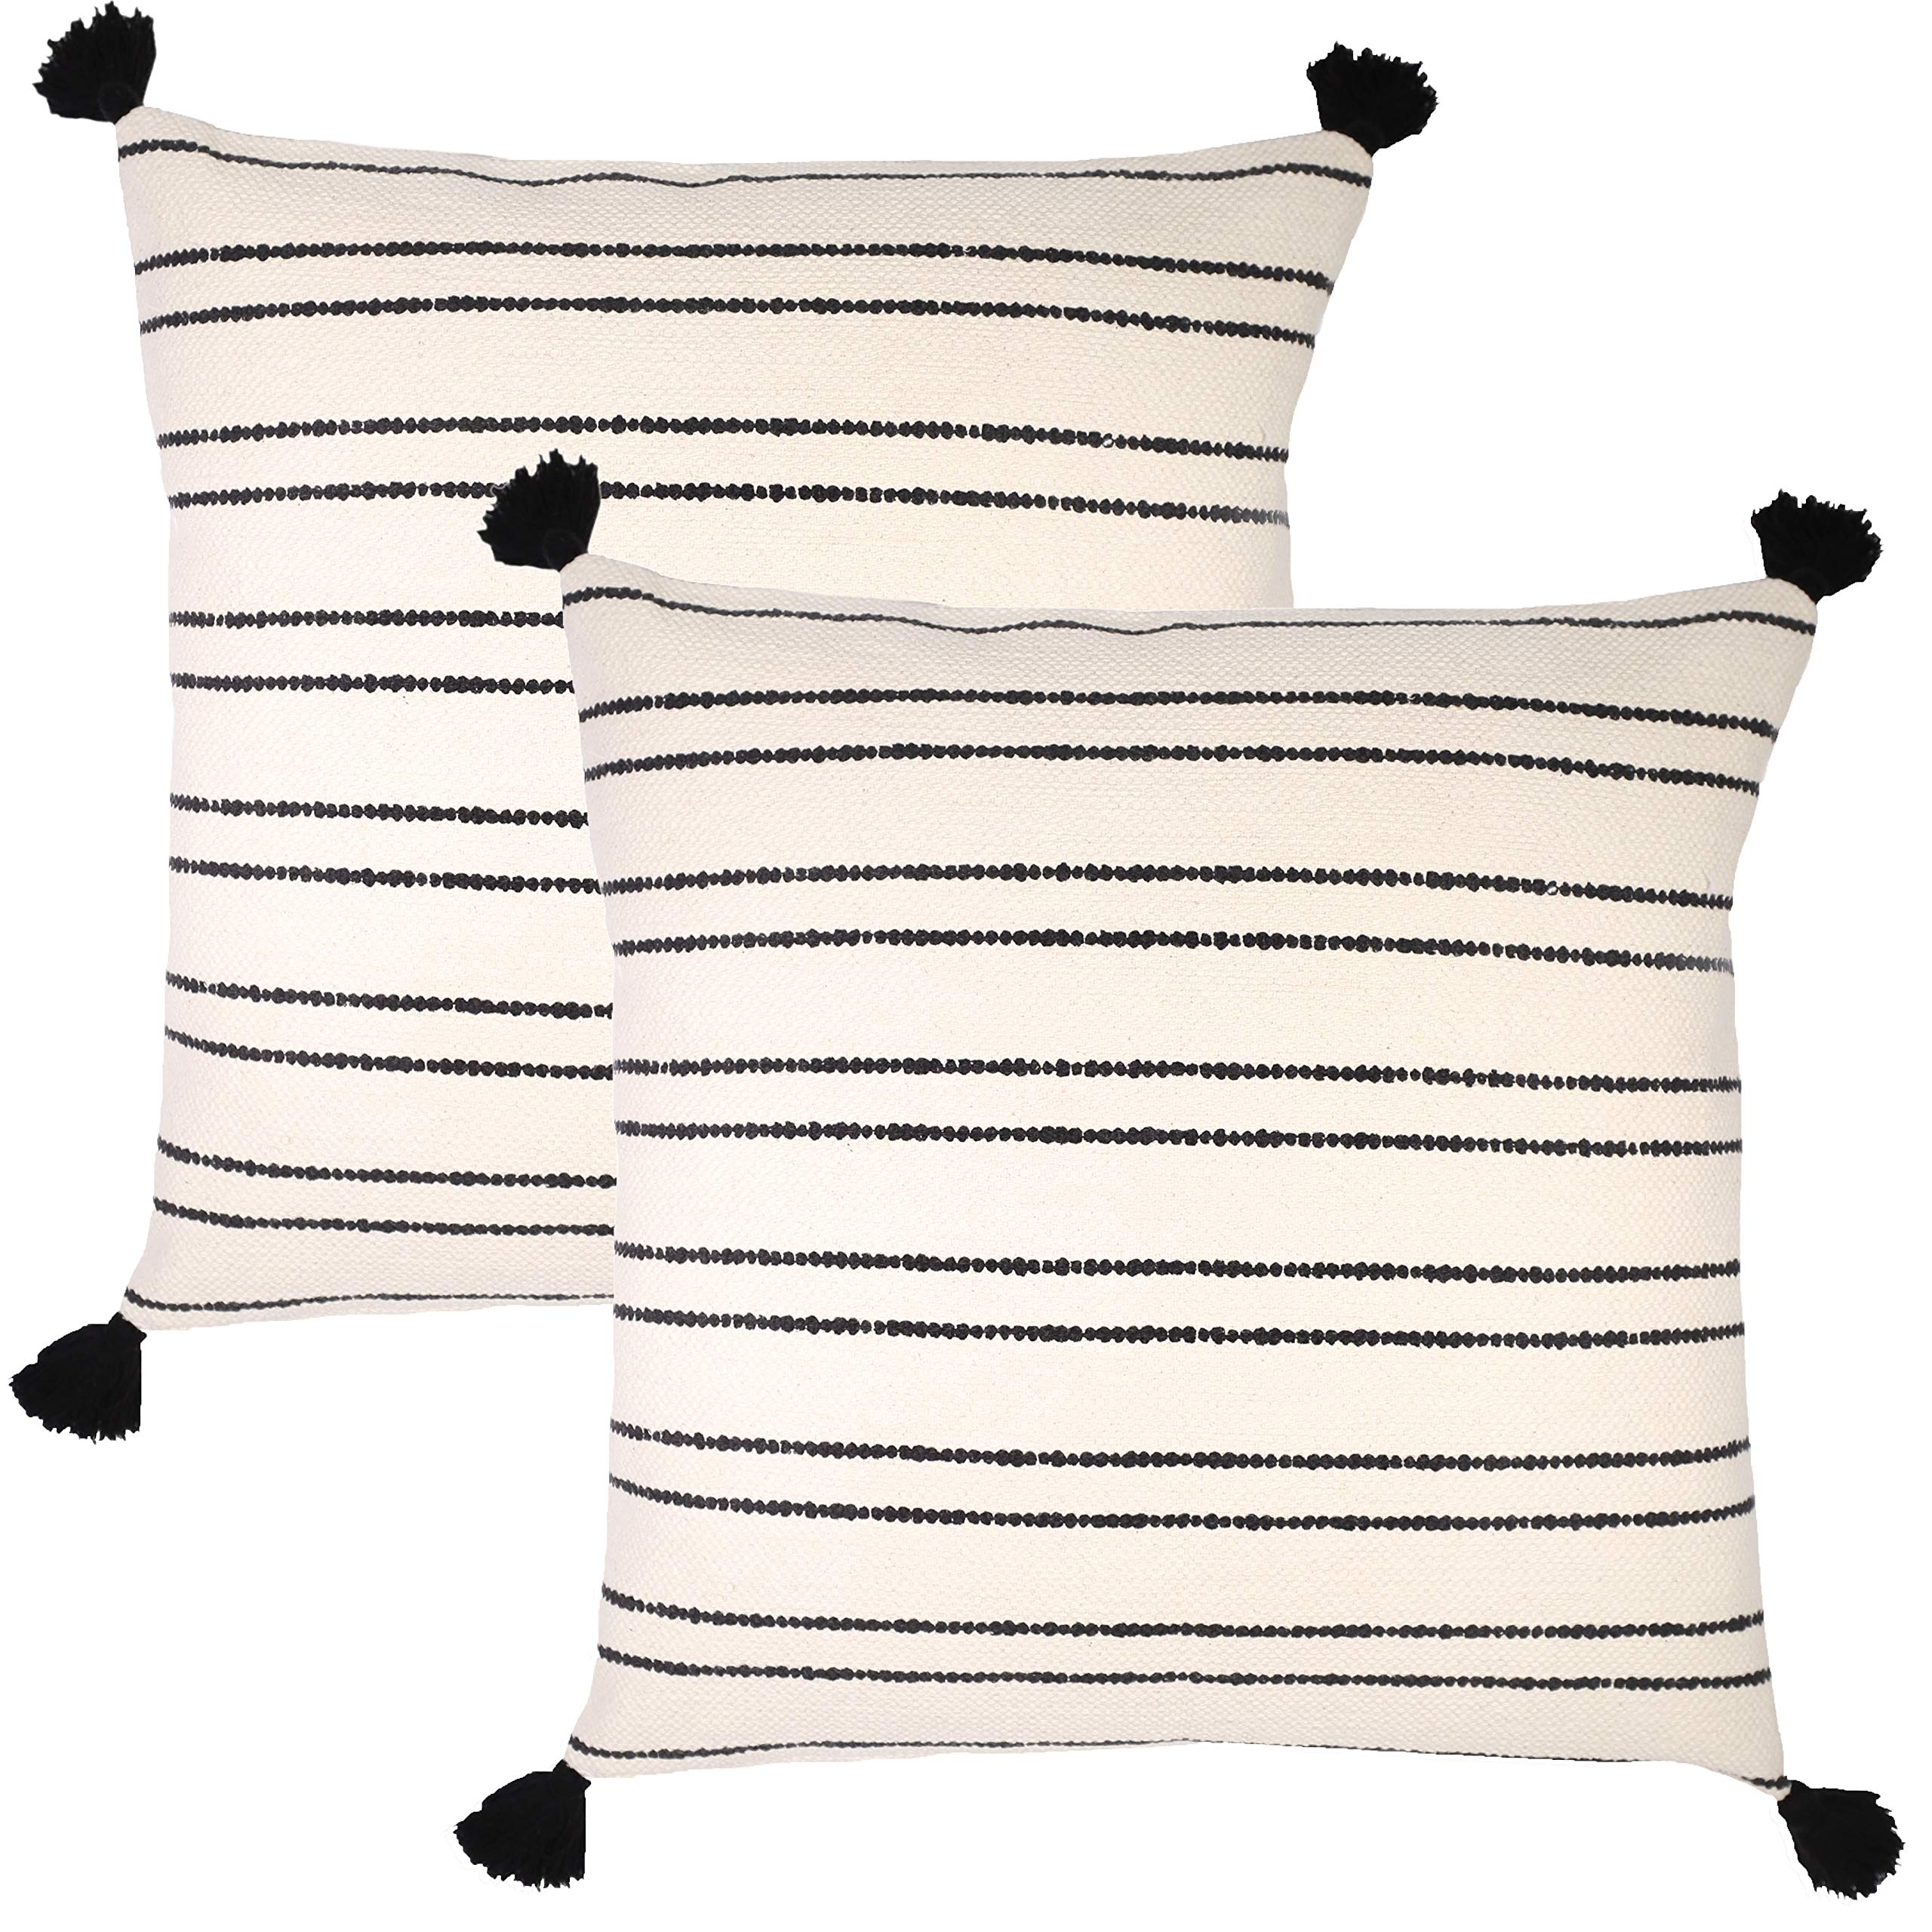 Woven Nook Decorative Throw Pillow Euro Size Covers ONLY Set of 2 24 x 24'' for Couch, Sofa, or Bed Modern Quality Design 100% Thick Weave Cotton Black and Cream/Off White Demi by Woven Nook